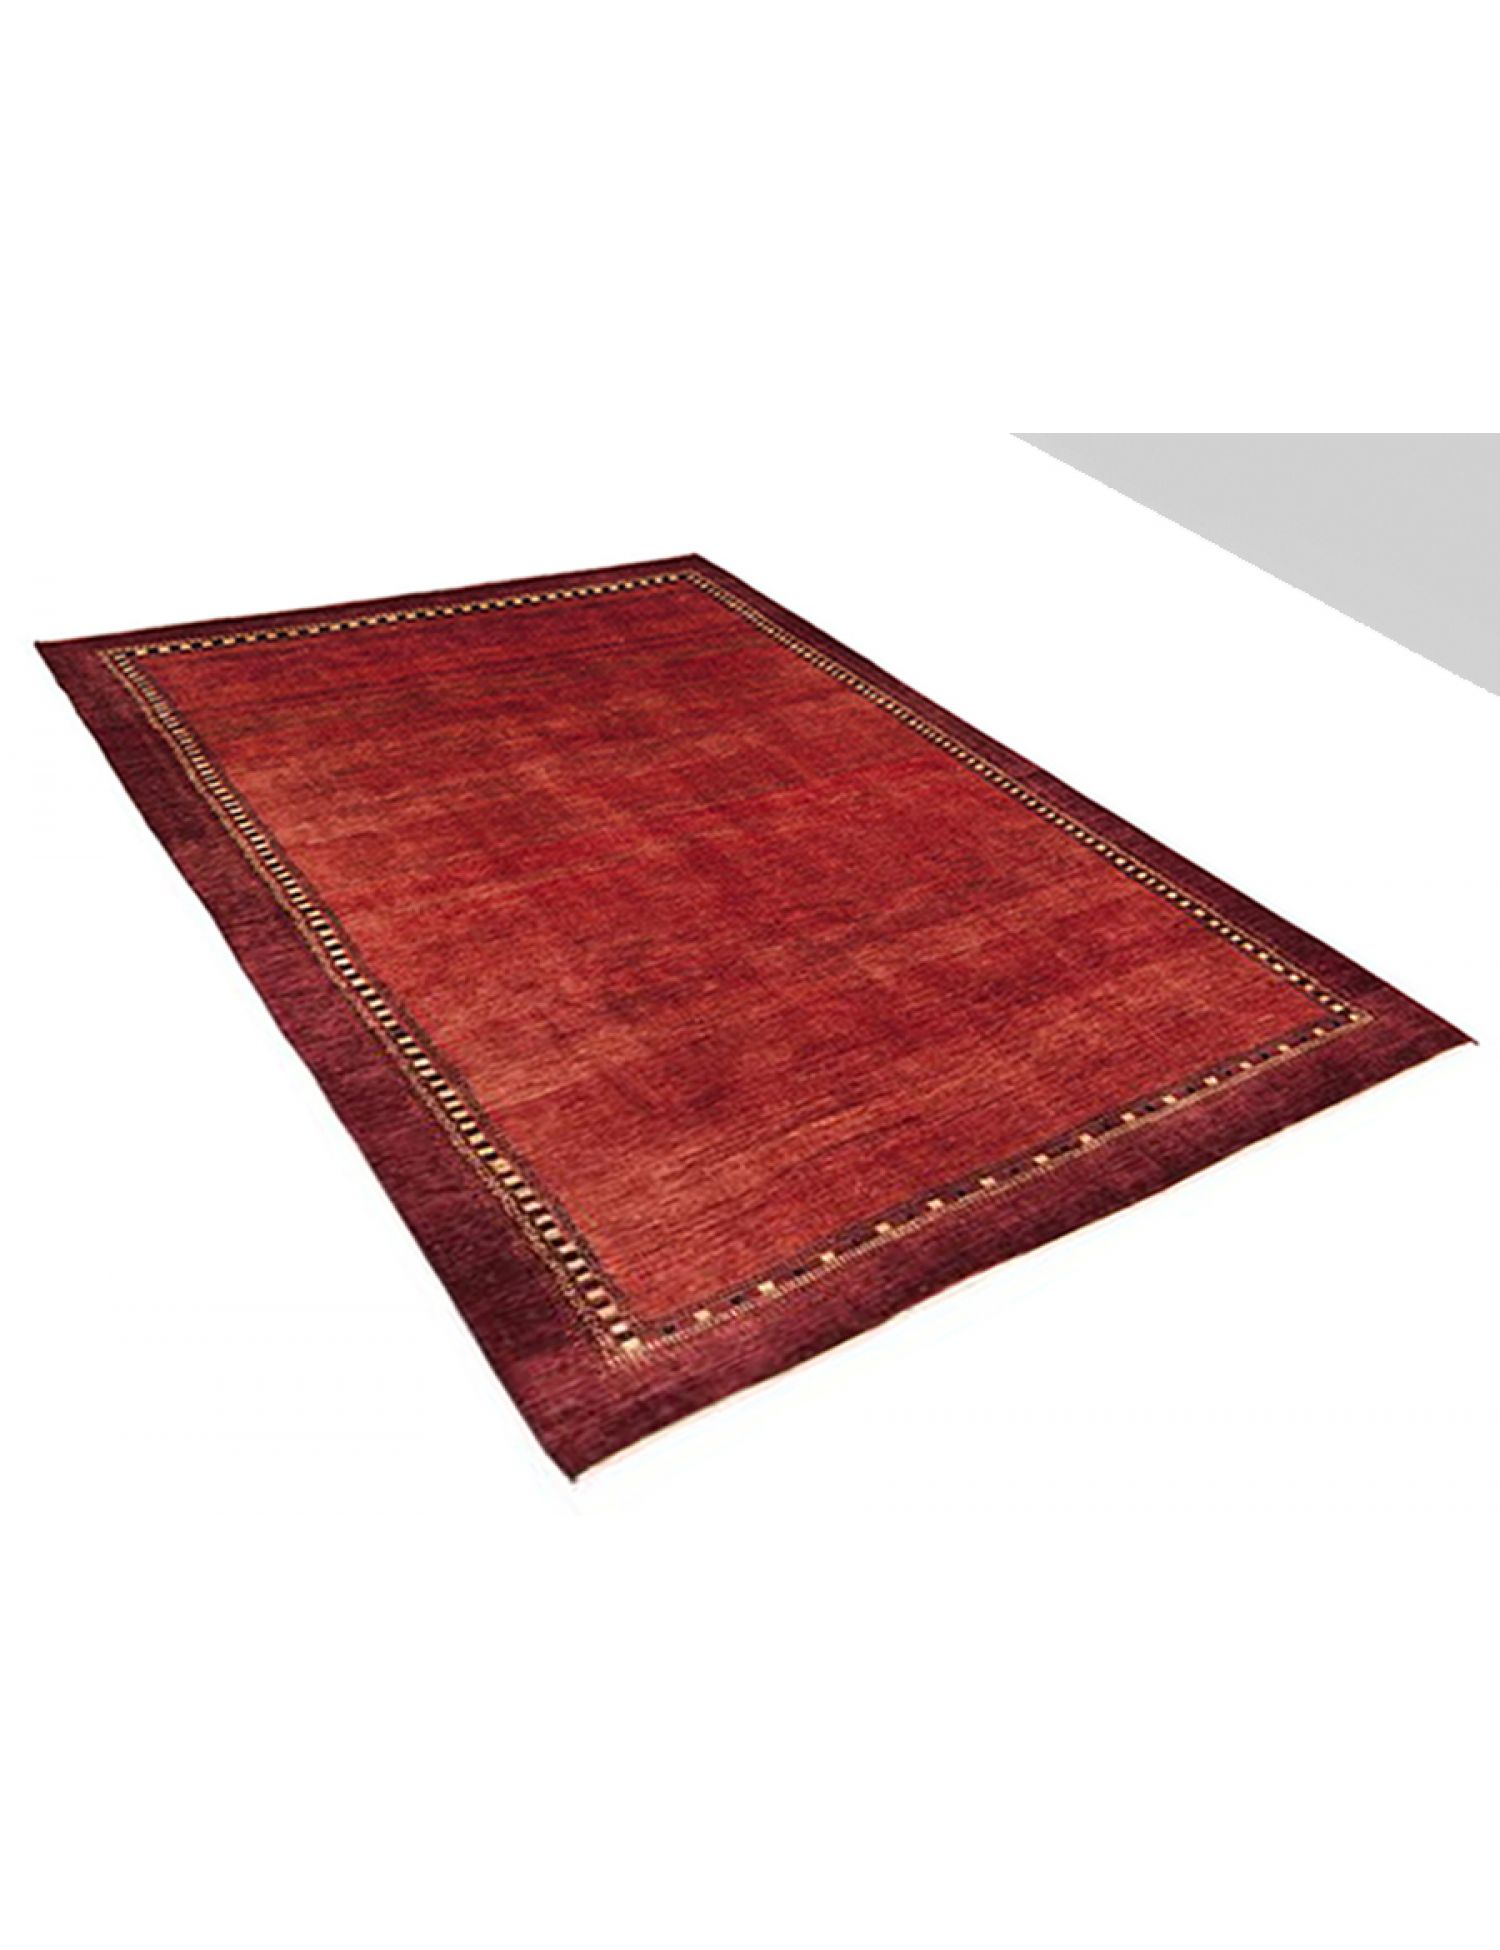 Superior Persian Luribuffs  rot <br/>298 x 200 cm